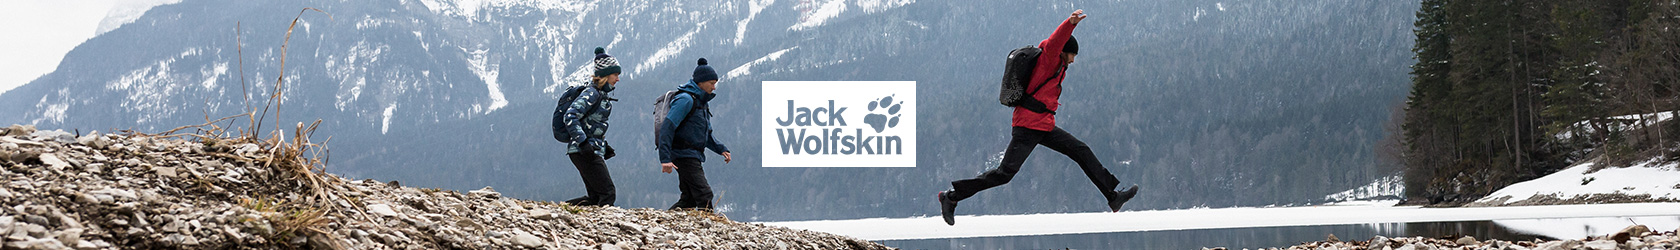 People enjoying outdoors, wearing Jack Wolfskin gear